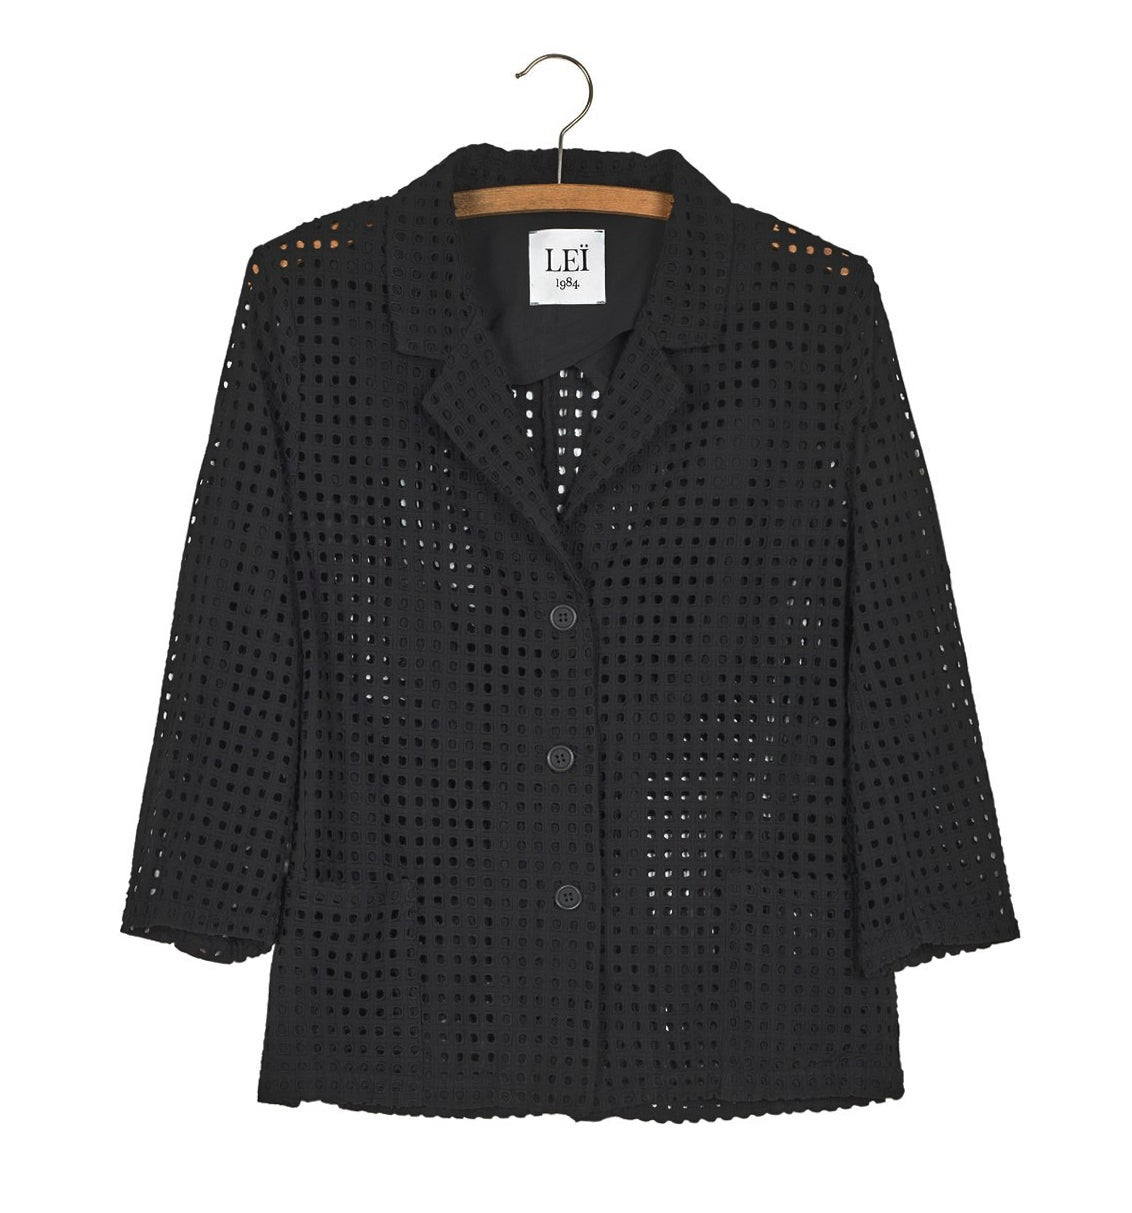 Image of Blazer broderie anglaise VALERIE 189€ 60%